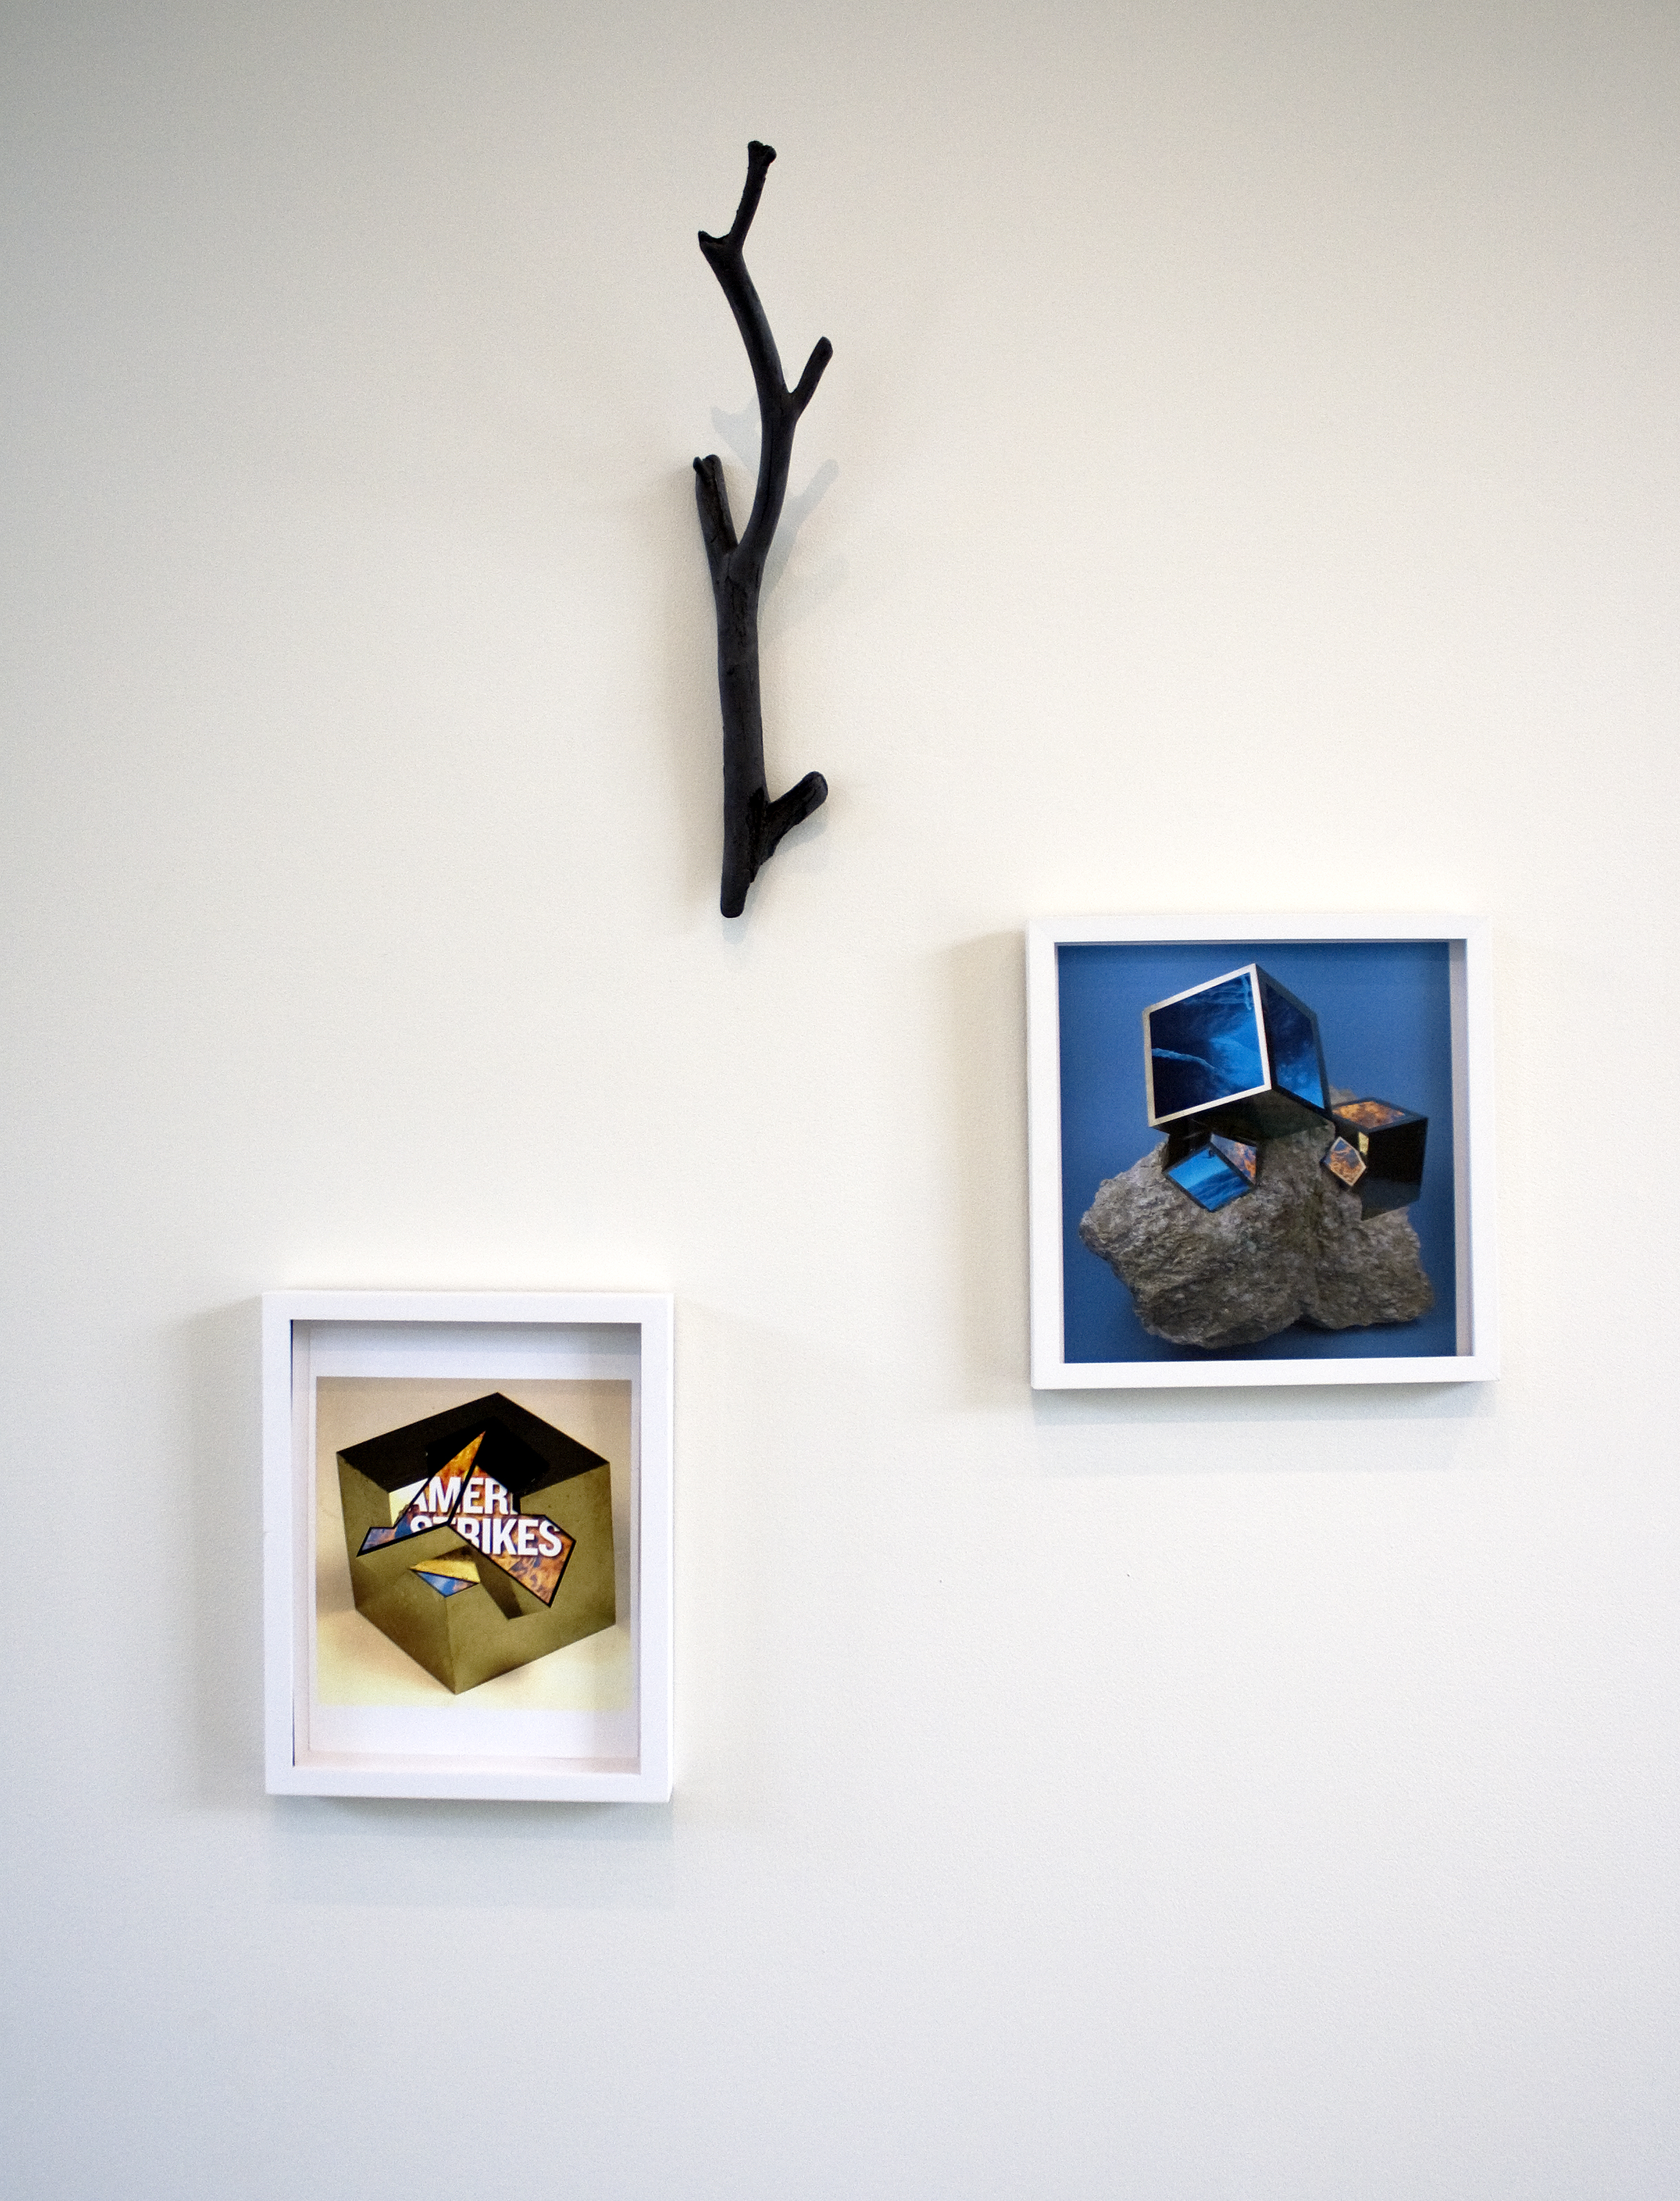 Black Cast Branch (Russian River) and Pyrite collages